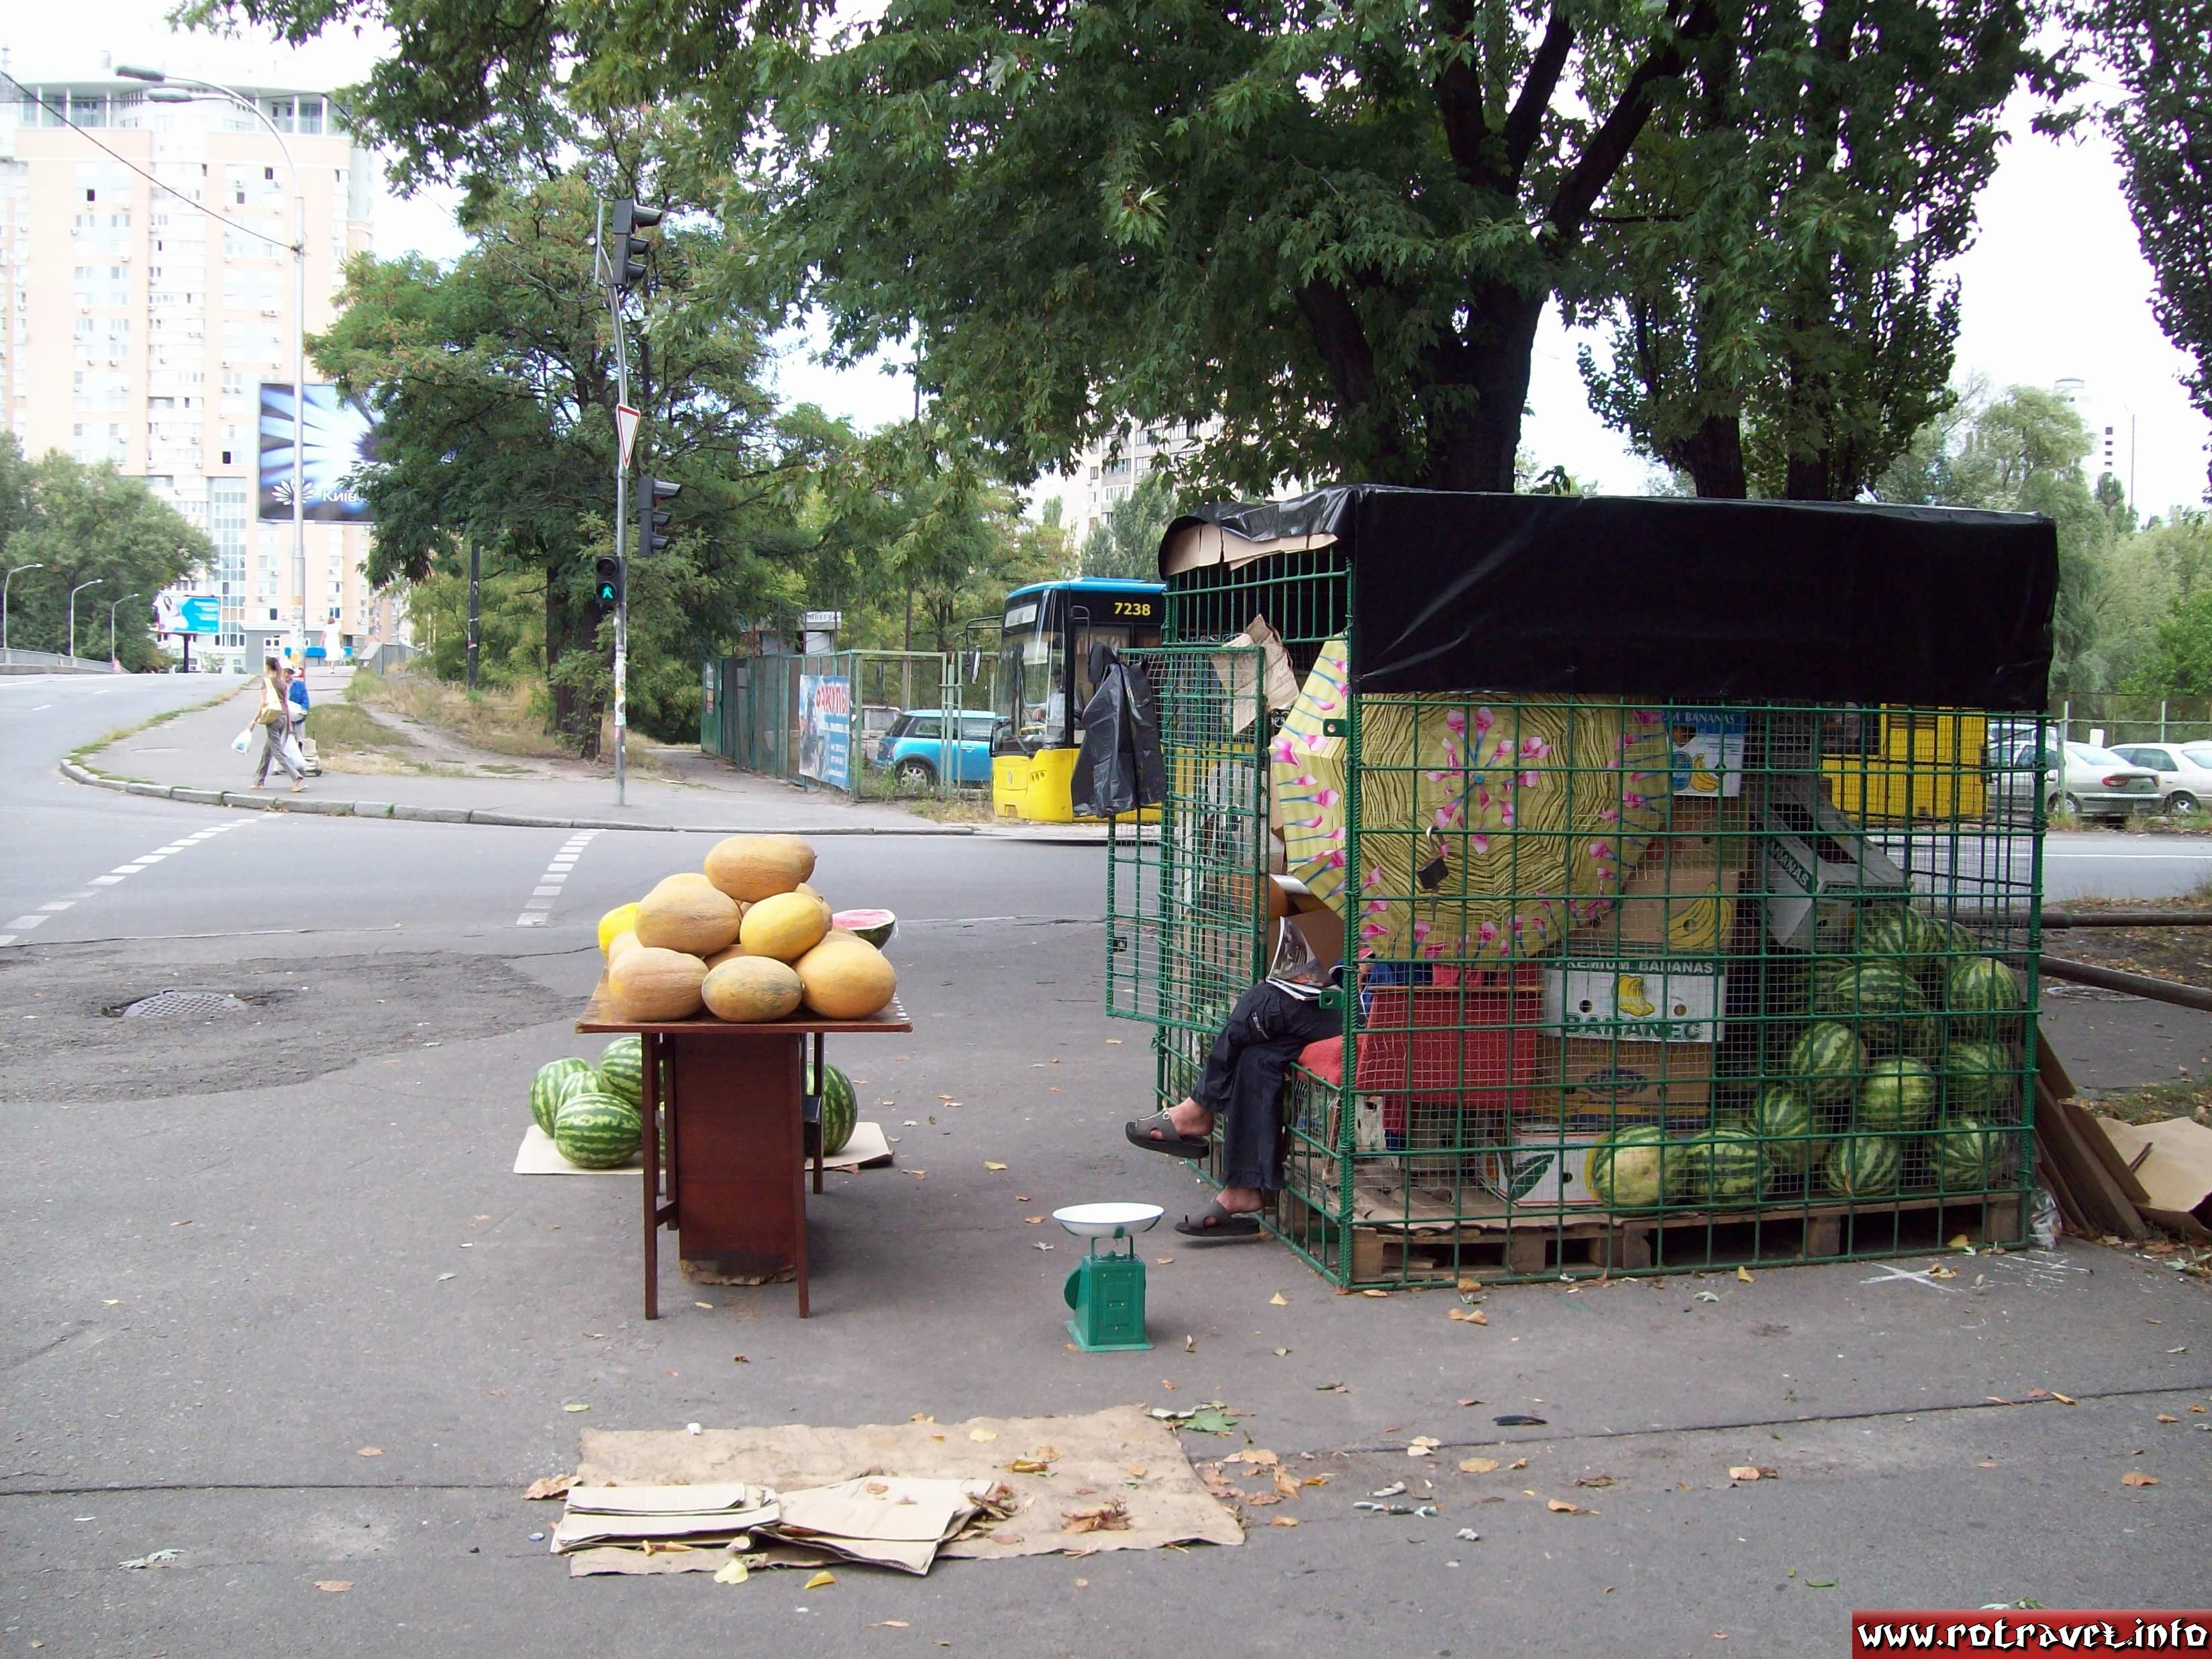 Watermelons from Kherson (Ukrainian and Russian: Херсон)